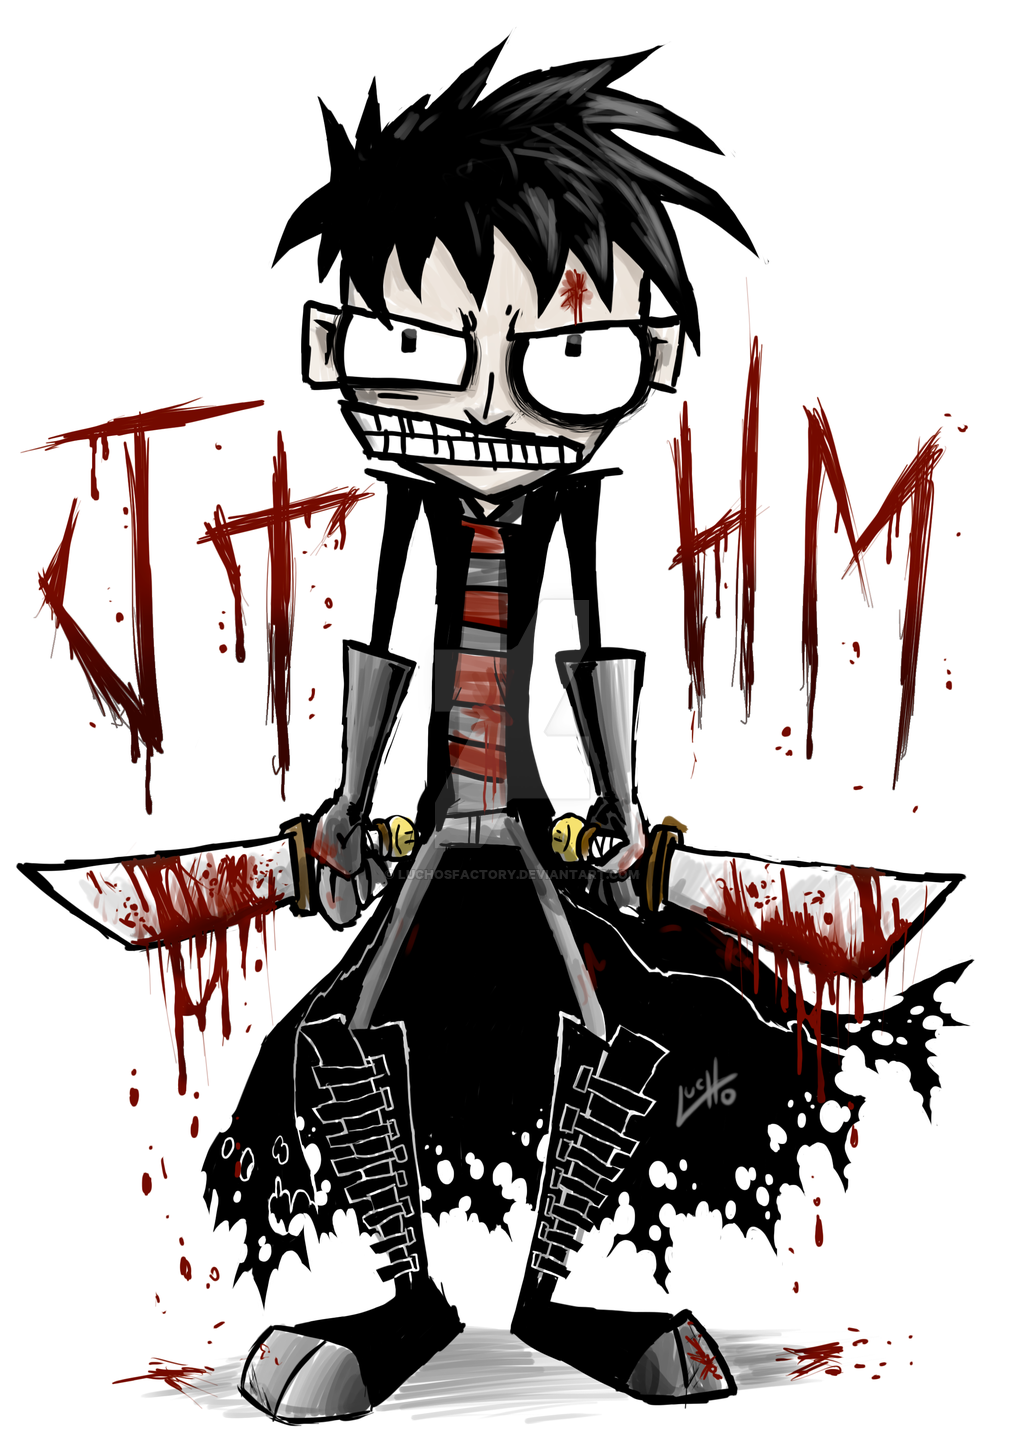 Johnny the Homicidal Maniac by LuchosFactory on DeviantArt.